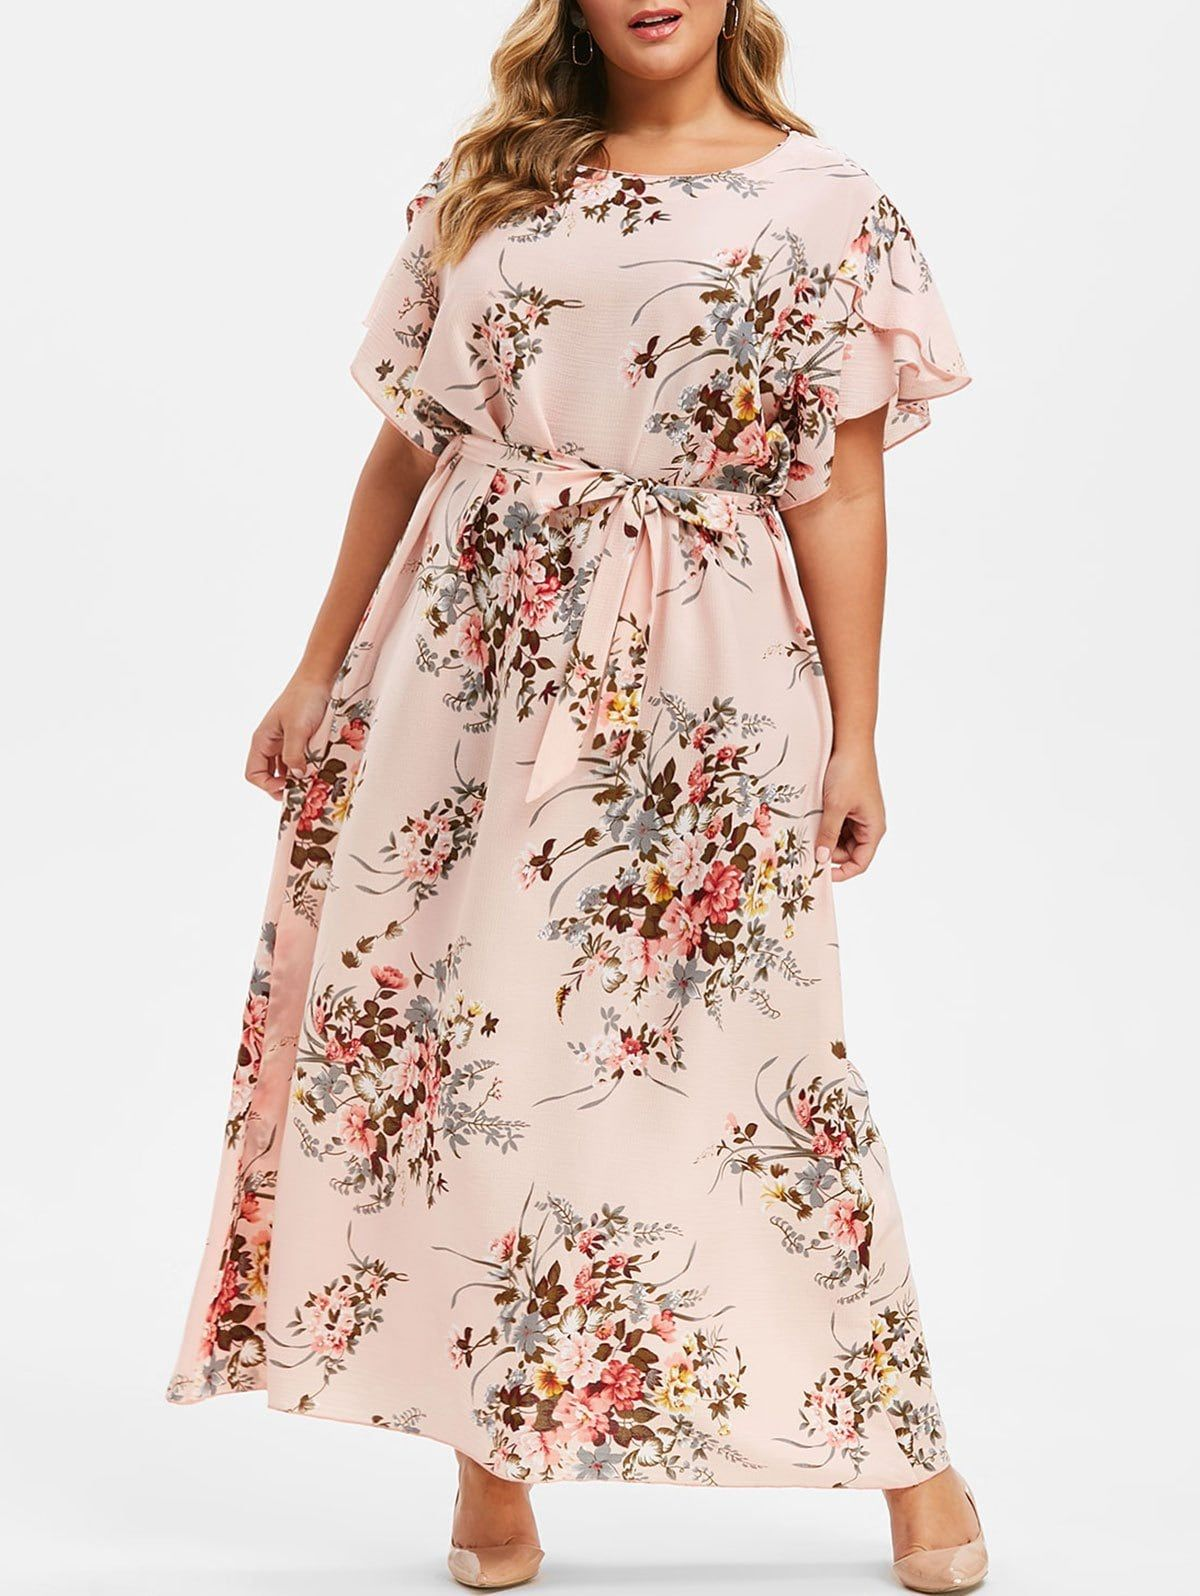 Plus Size Floral Tulip Sleeve Maxi Dress Maxi Dress With Sleeves Spring Dresses Women Dress For Short Women